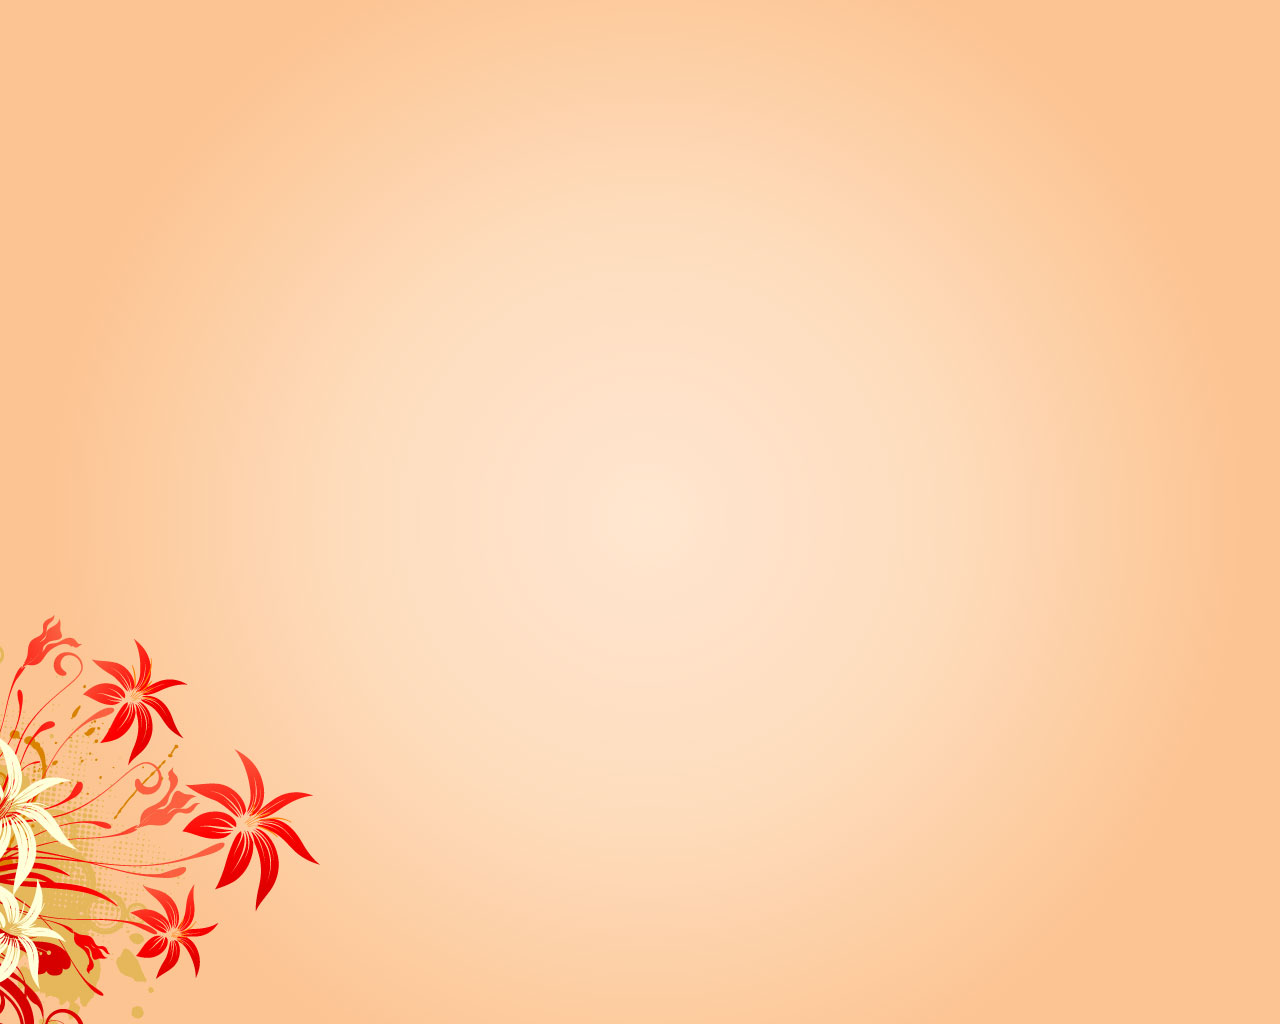 Christian Floral PPT Backgrounds